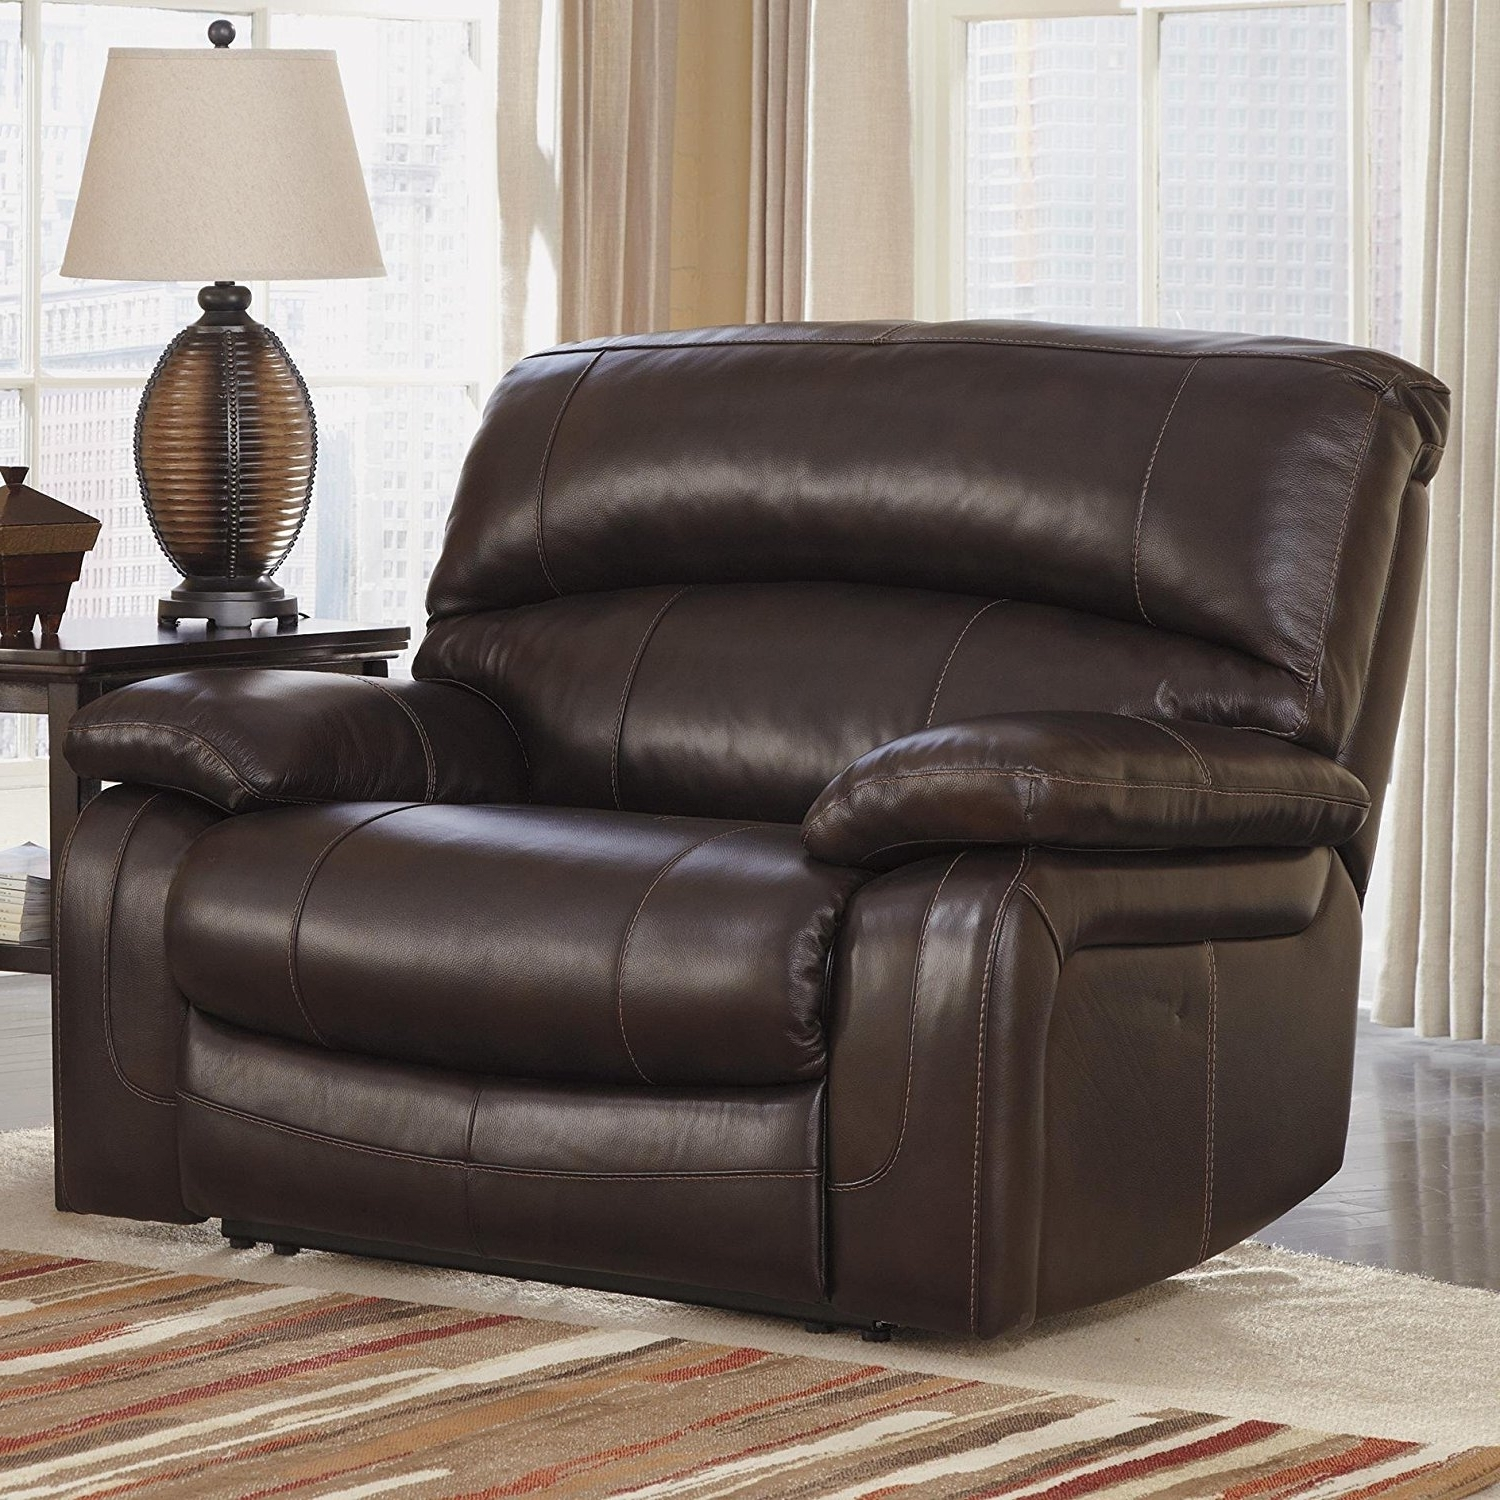 Ikea Recliners Sale Modern Sleeper Sofa Living Room Furniture Throughout 2019 Big Sofa Chairs (Gallery 6 of 20)